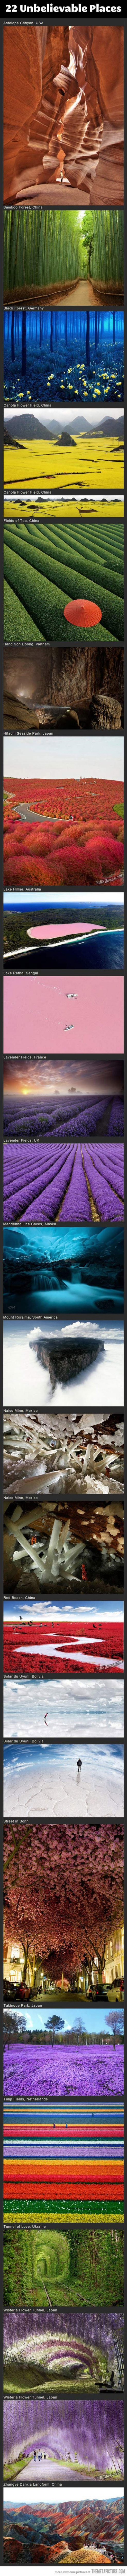 22 Incredible Places You Think Are From Another Planet